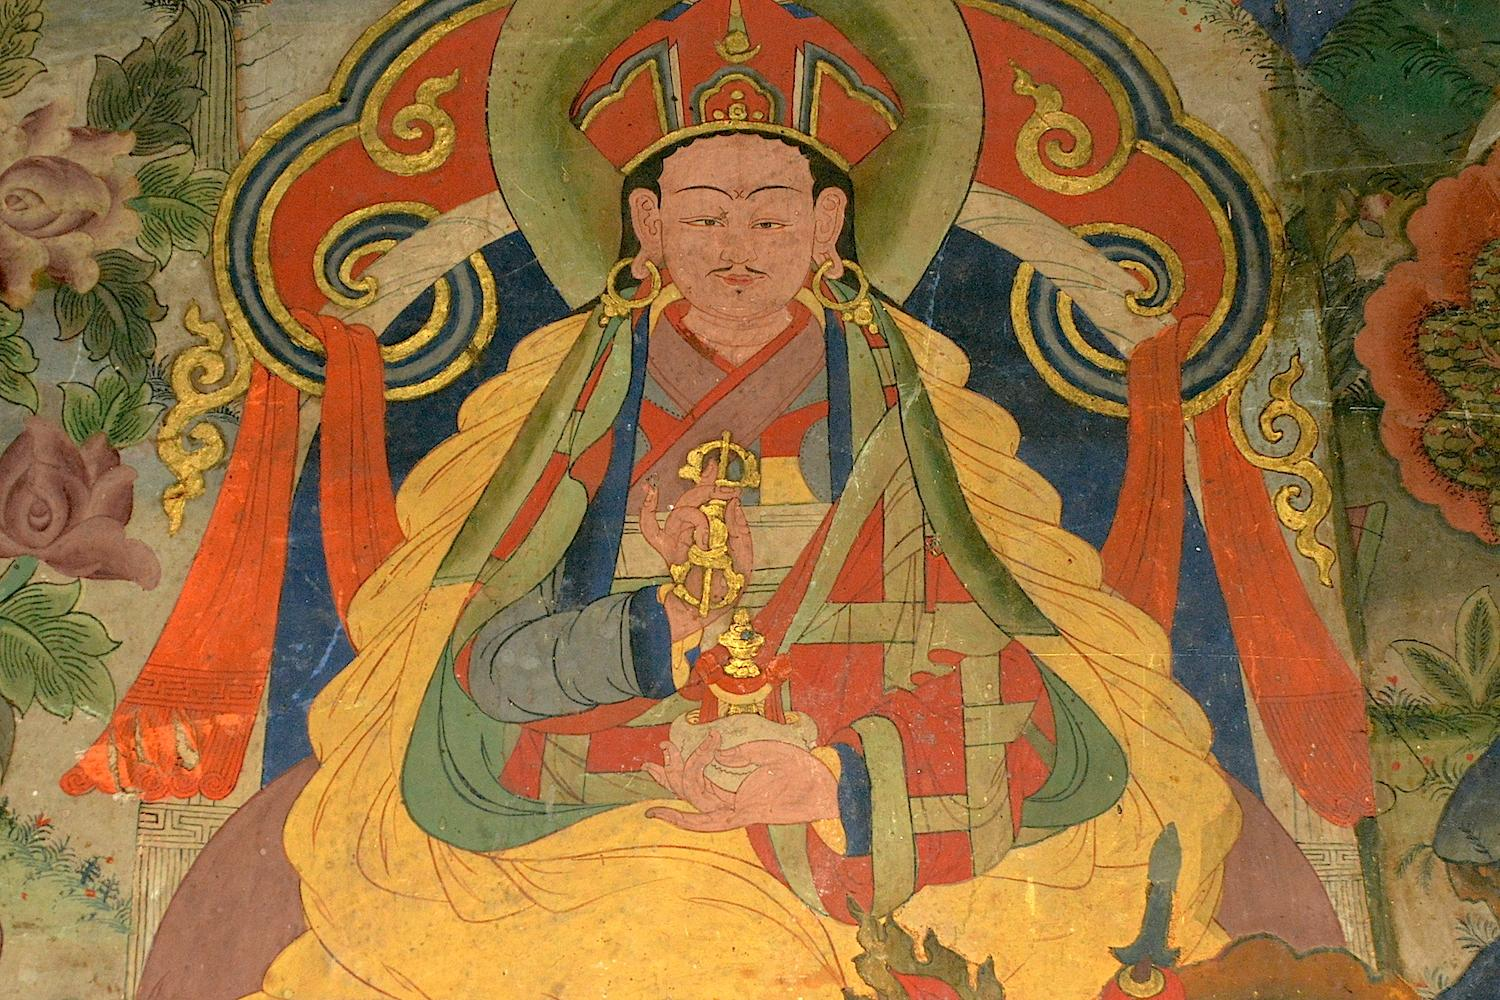 Historical Artists of Bhutan | Tibet Himalaya Initiative